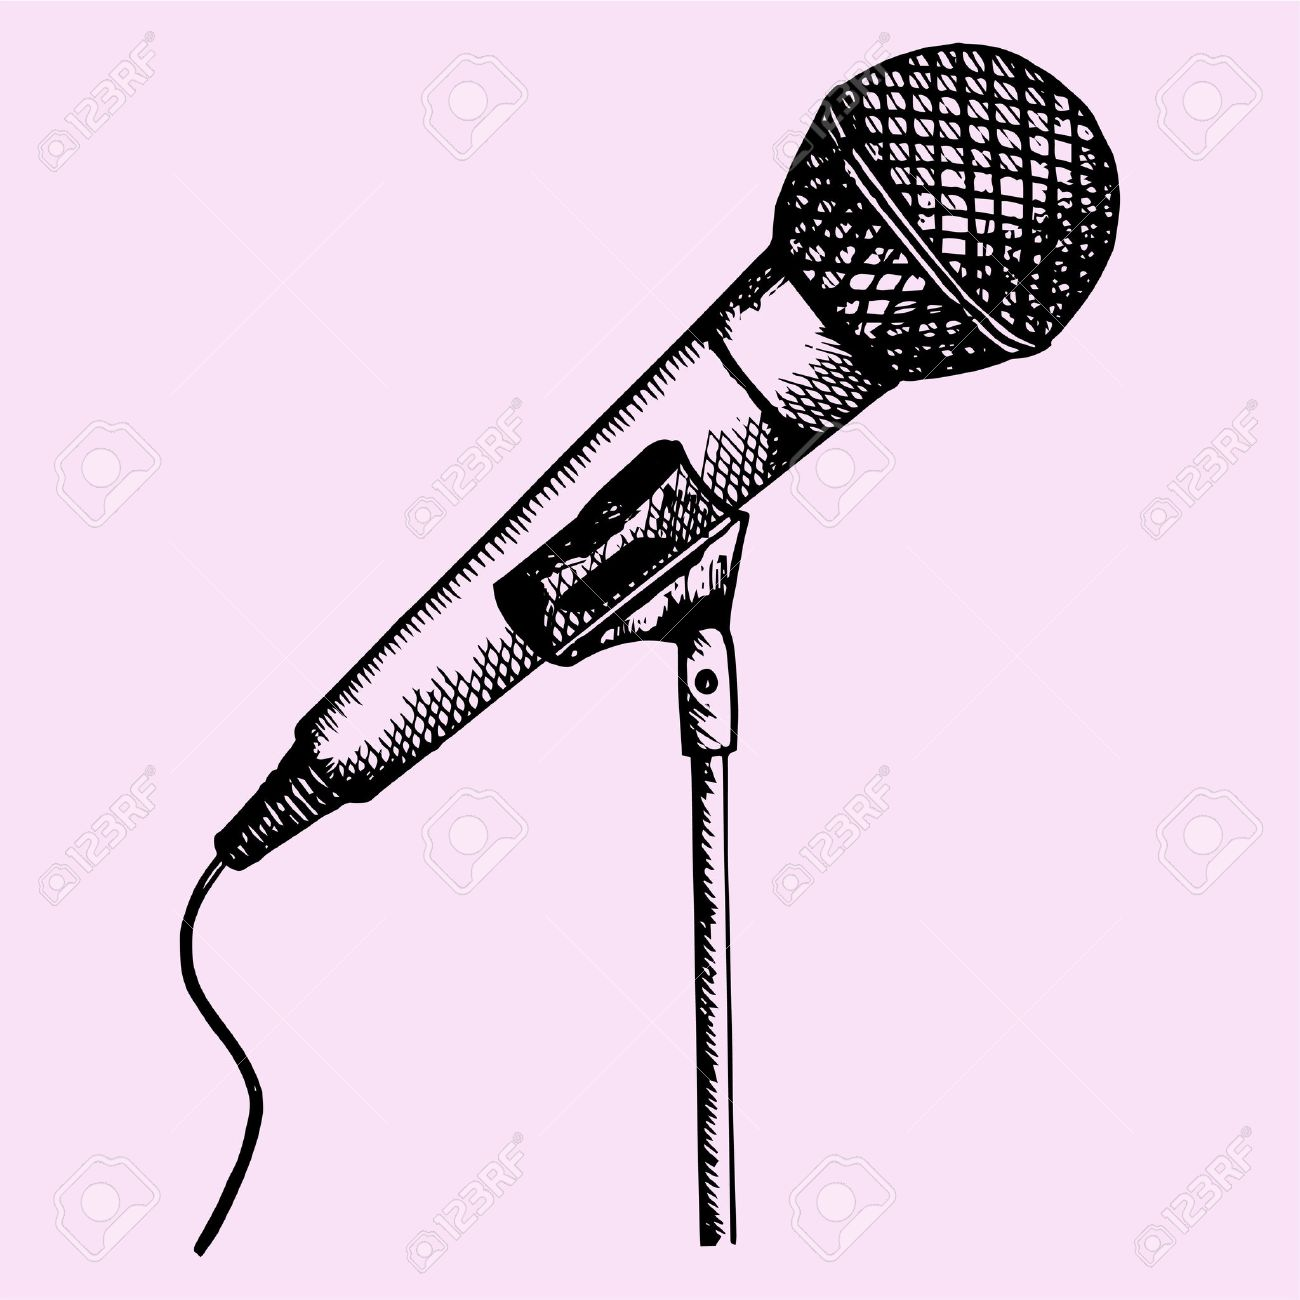 1300x1300 Microphone On A Stand, Doodle Style, Sketch Illustration, Hand